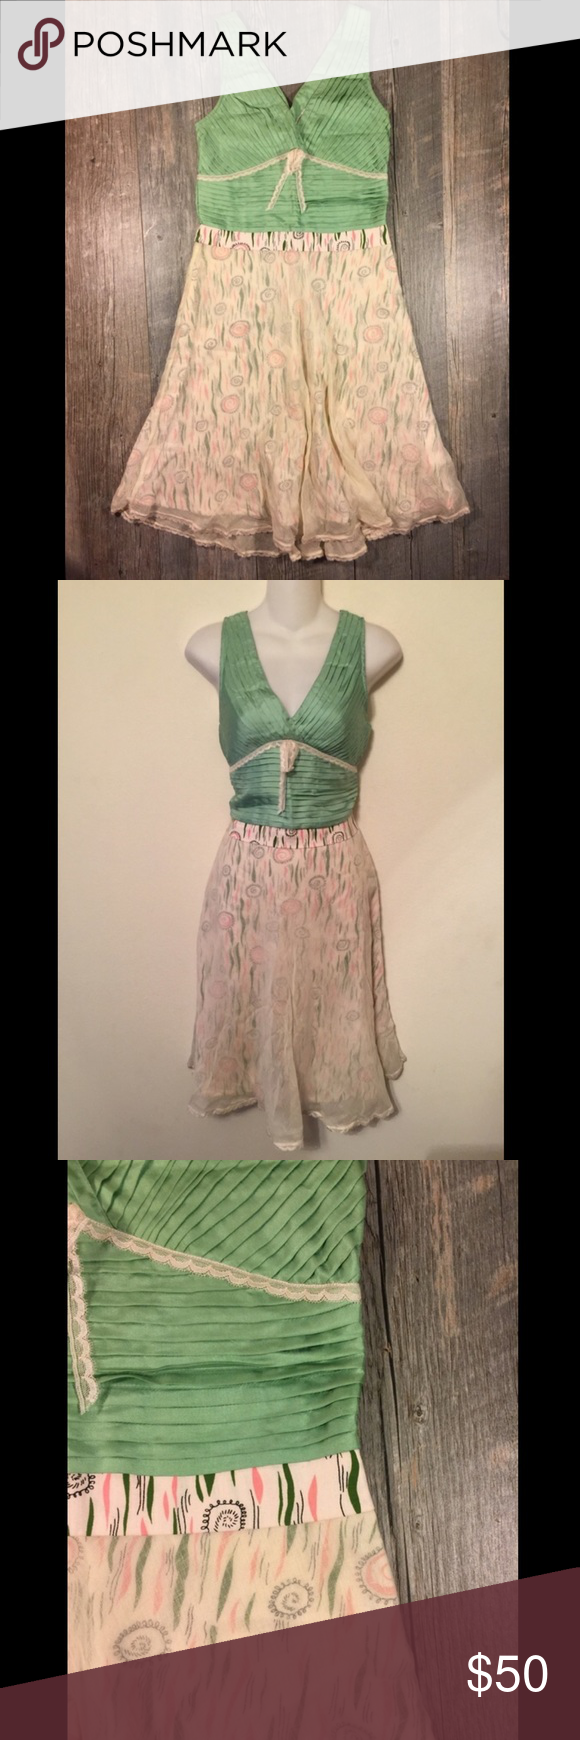 Green dress with lace overlay  Anthropologie Snak green pleated u lace dress  My Posh Picks